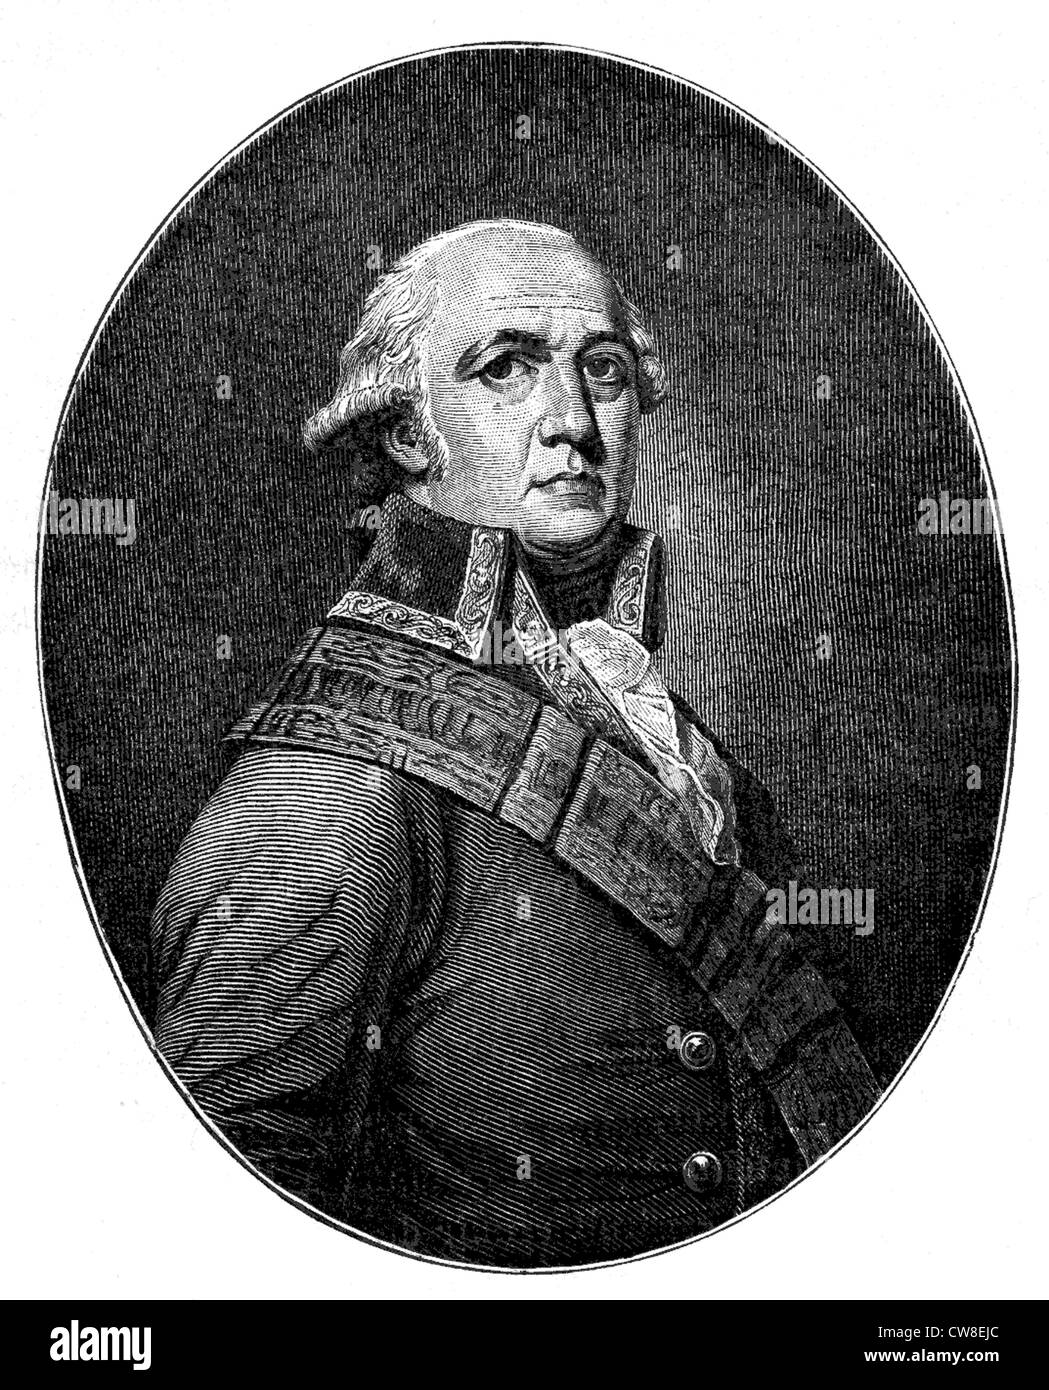 Alexander Suvorov - actor, famous for his role in Carmelite 29